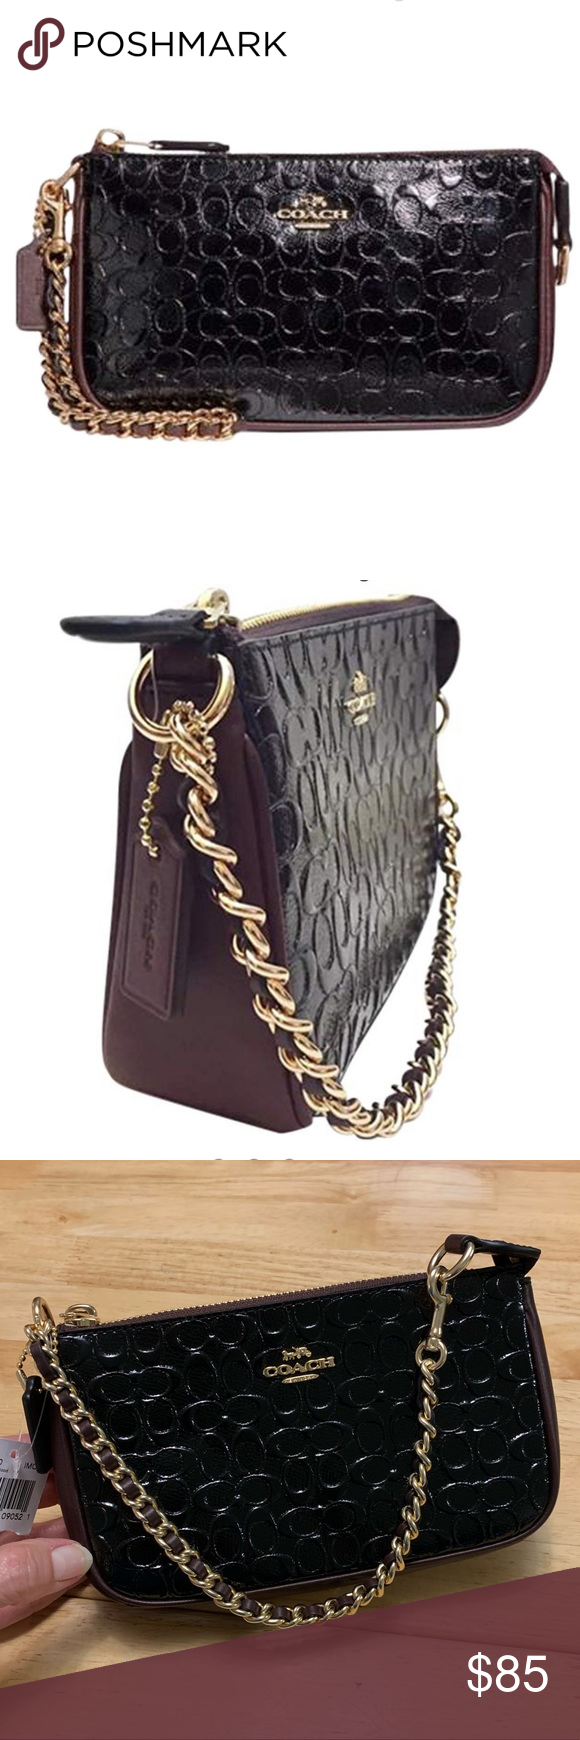 0926395ba09 Coach Wristlet Coach Signature Patent Leather Large Wristlet in black oxblood  color with a gold